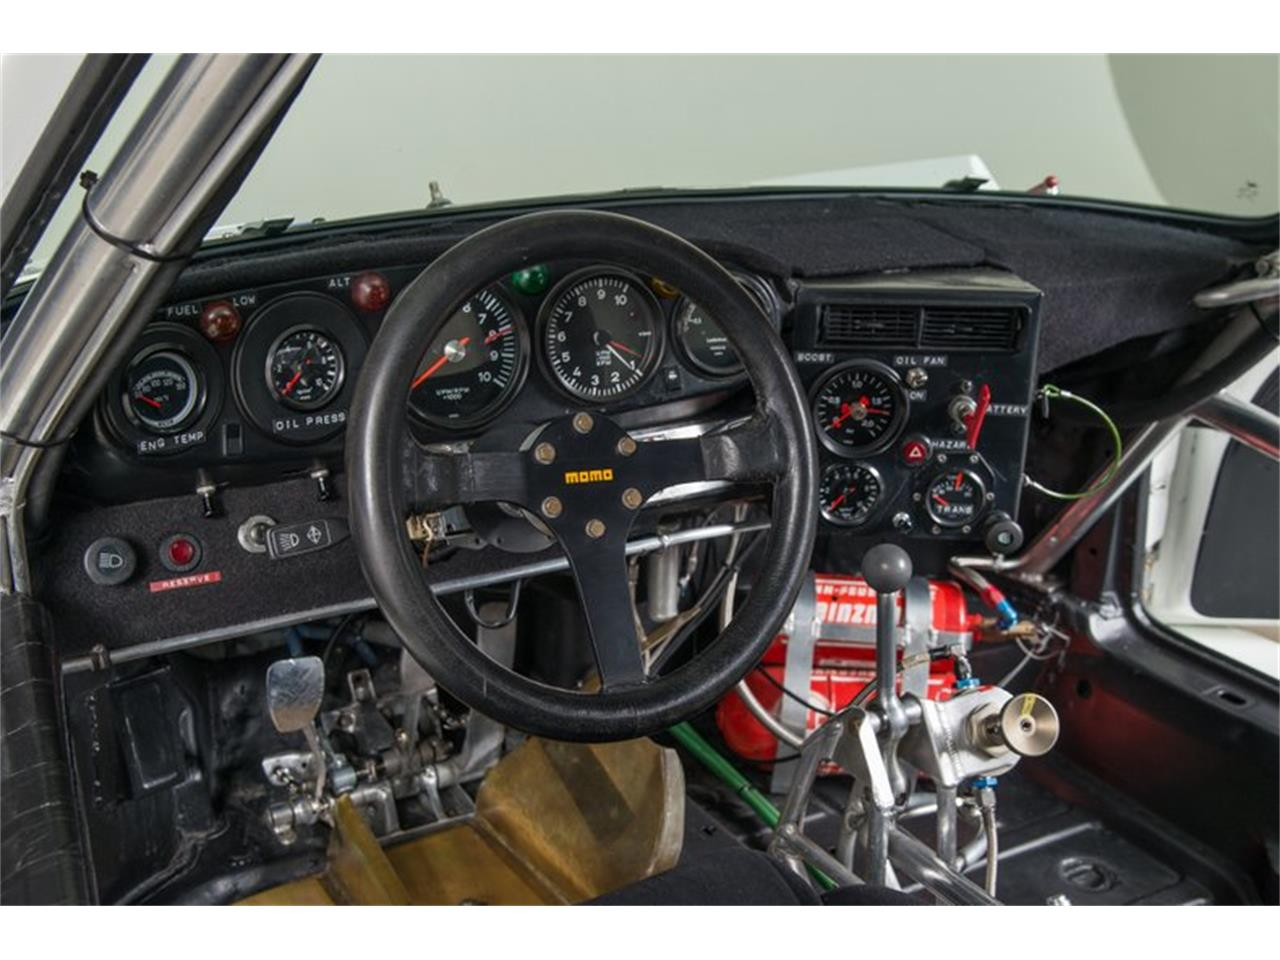 1979 Joest Porsche 935 for sale in Scotts Valley, CA – photo 21